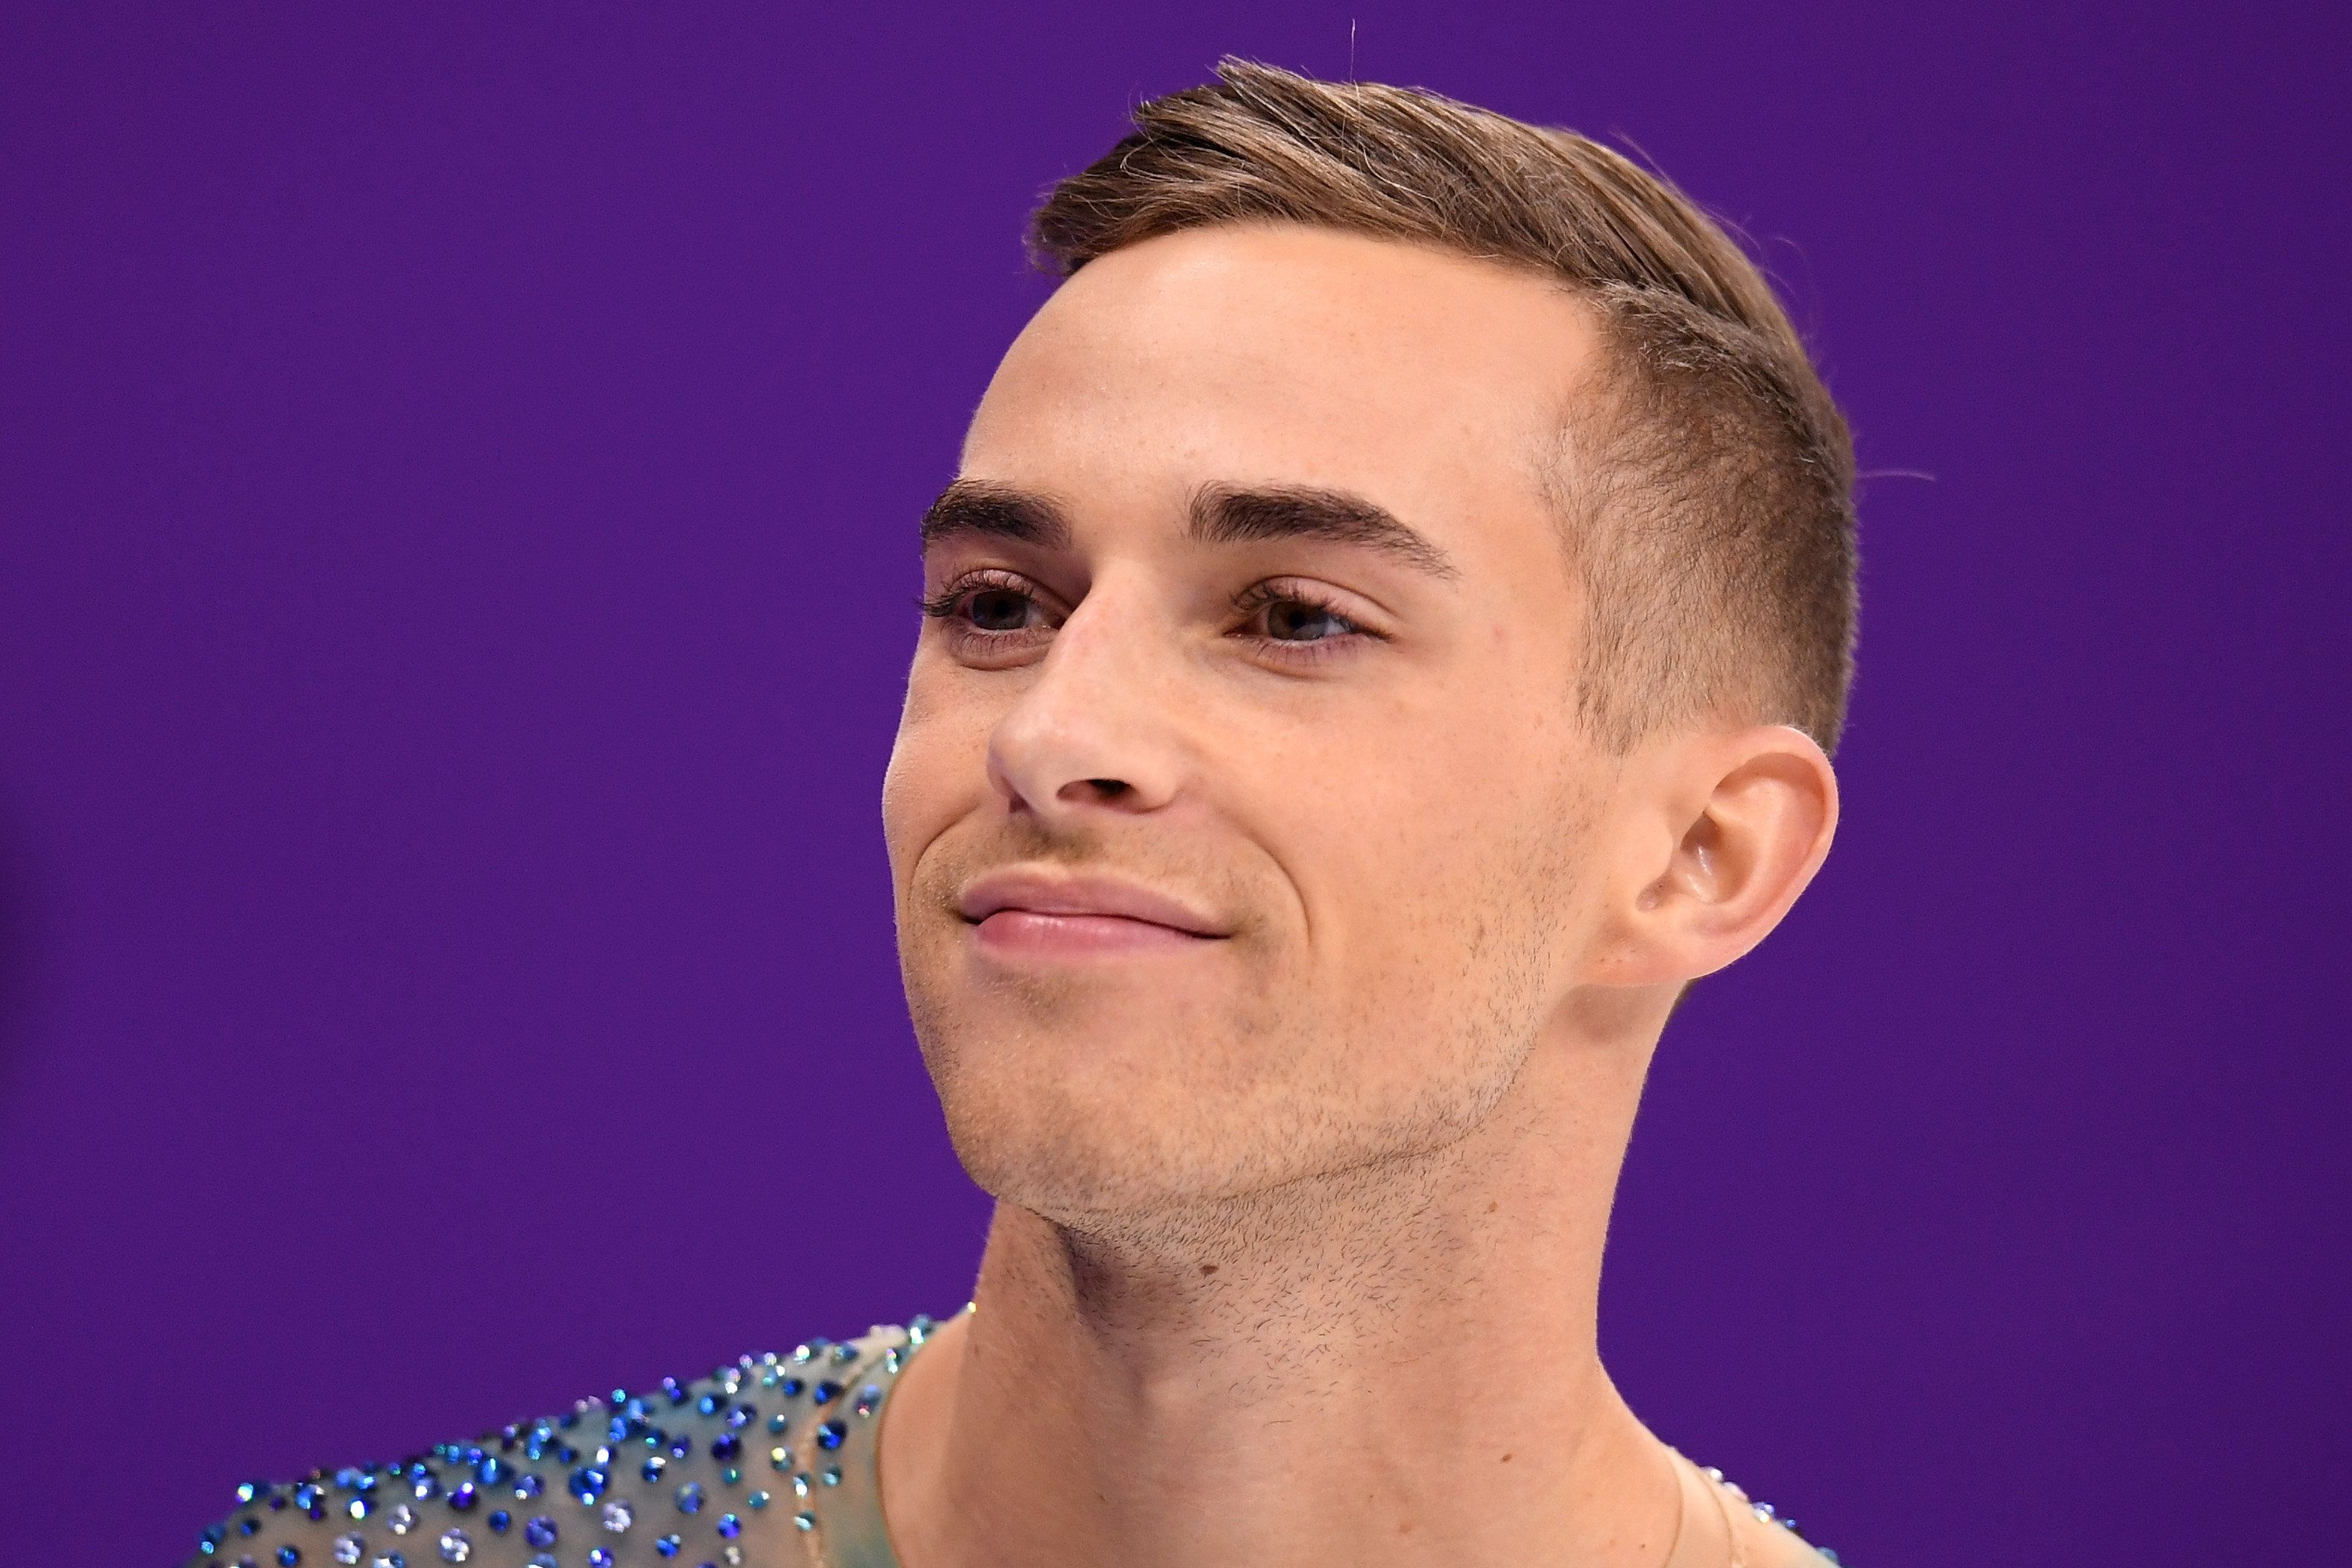 GANGNEUNG, SOUTH KOREA - FEBRUARY 17:  Adam Rippon of the United States warms up before competing during the Men's Single Free Program on day eight of the PyeongChang 2018 Winter Olympic Games  at Gangneung Ice Arena on February 17, 2018 in Gangneung, South Korea.  (Photo by Harry How/Getty Images)